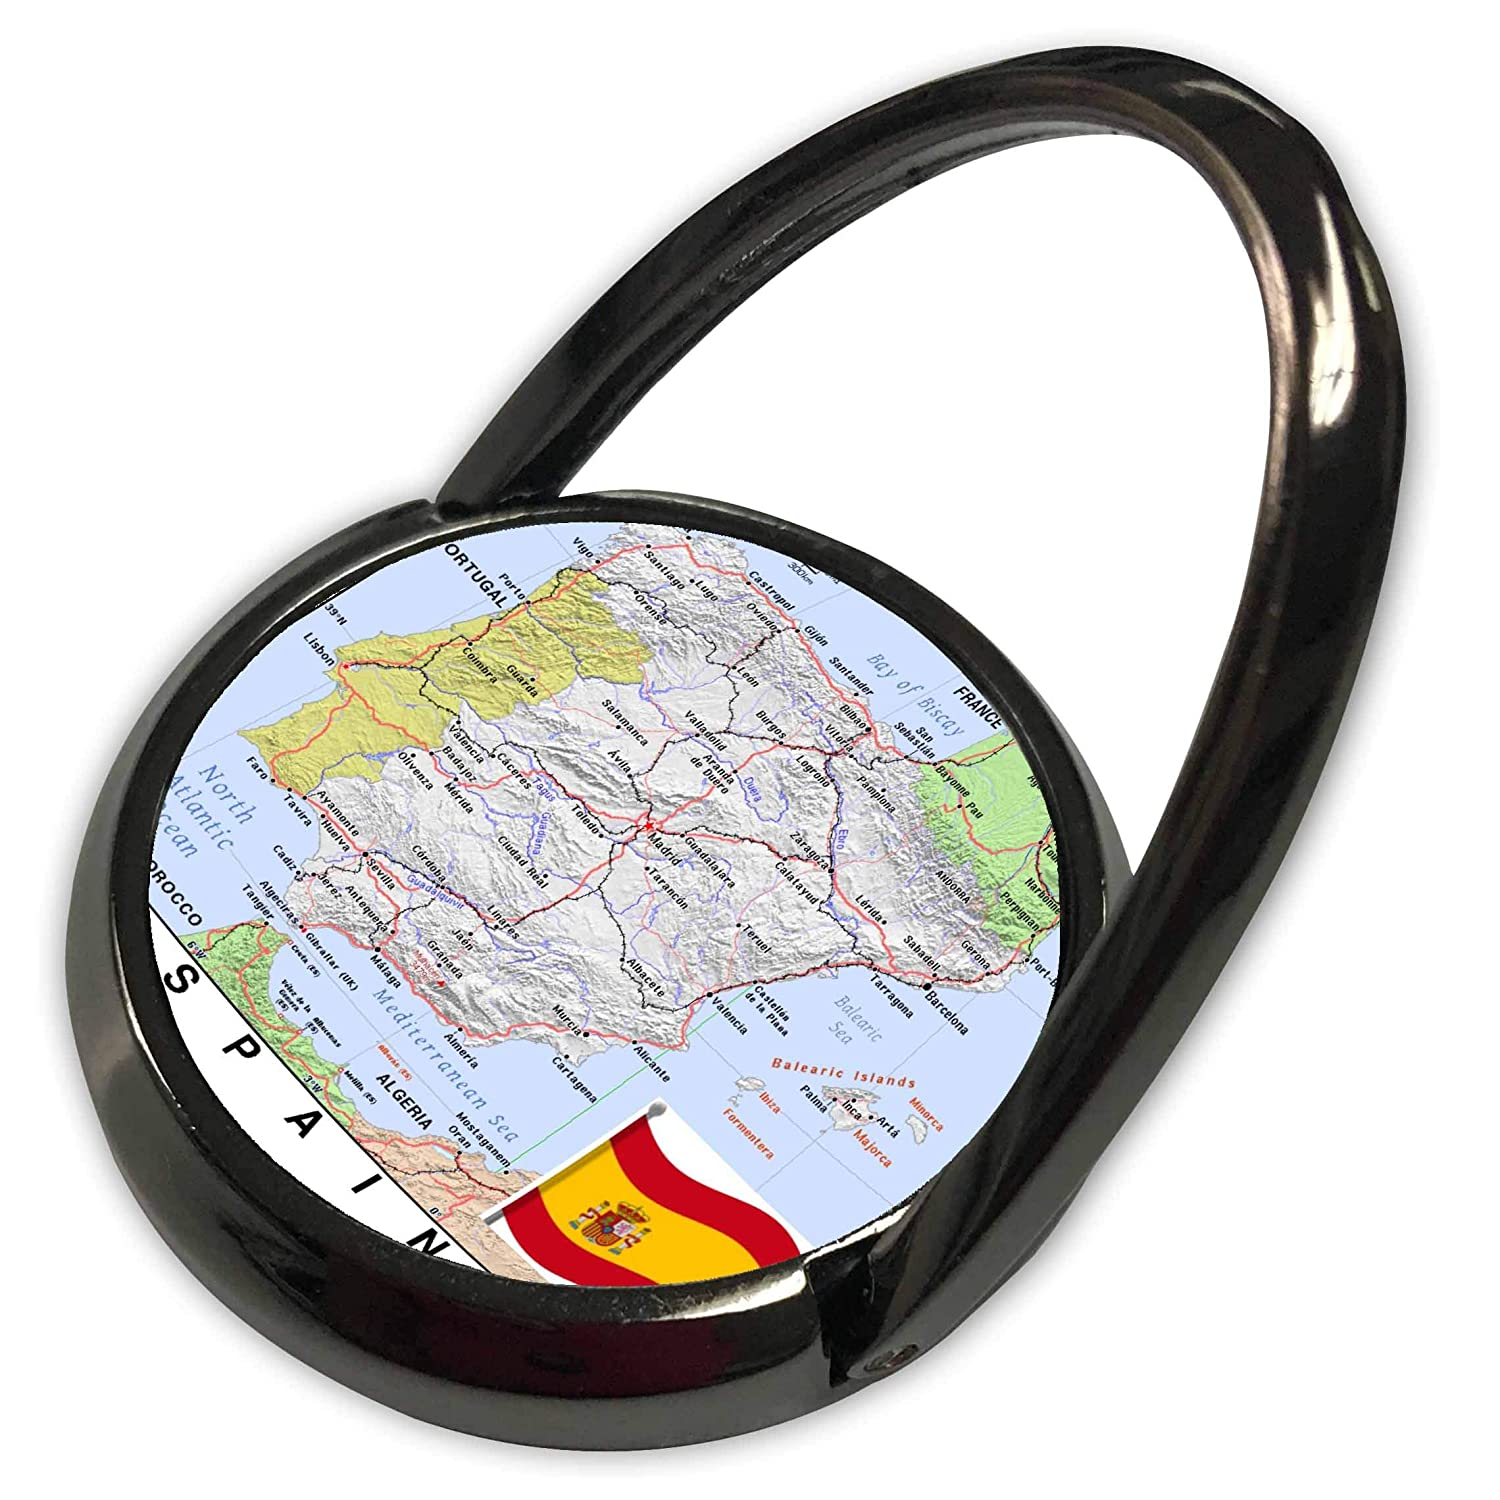 Amazon.com: 3dRose Lens Art by Florene - Topo Maps with Flags - Image of Topographic Map of Spain with Flag - Phone Ring (phr_299568_1): Electronics